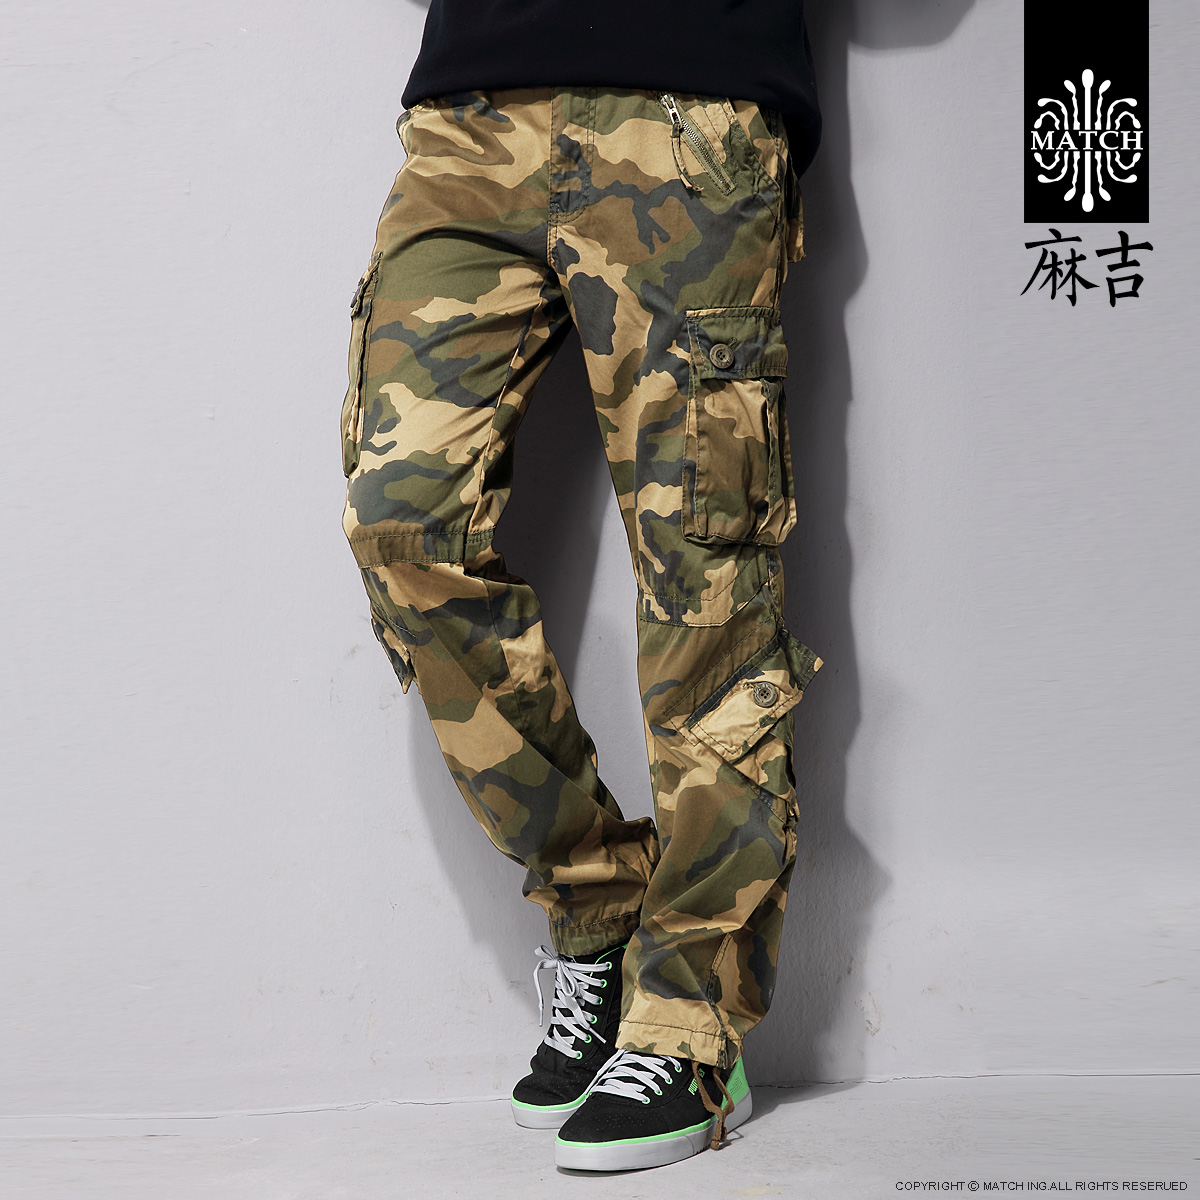 2019 Spring New Arrival Match Camouflage Long Trouser Loose Plus Size Multi Pockets Combat Military Army Cargo Pants For Men